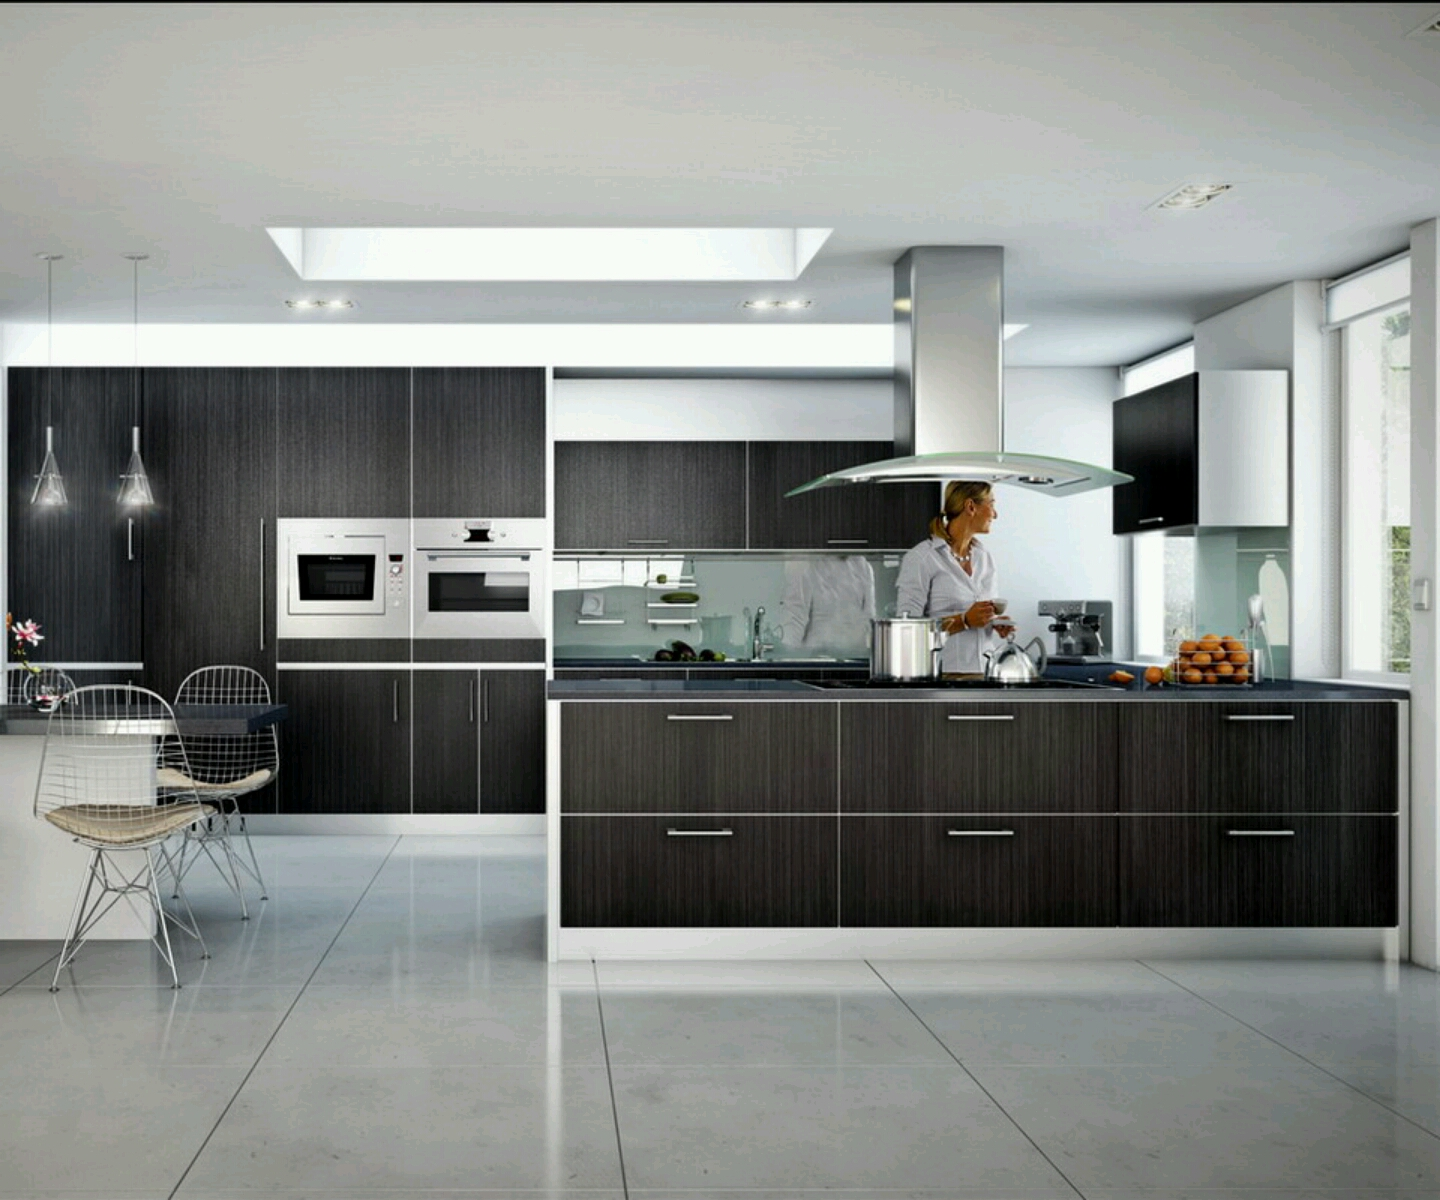 New home designs latest.: Modern homes ultra modern ... on Modern Kitchen Design  id=39479